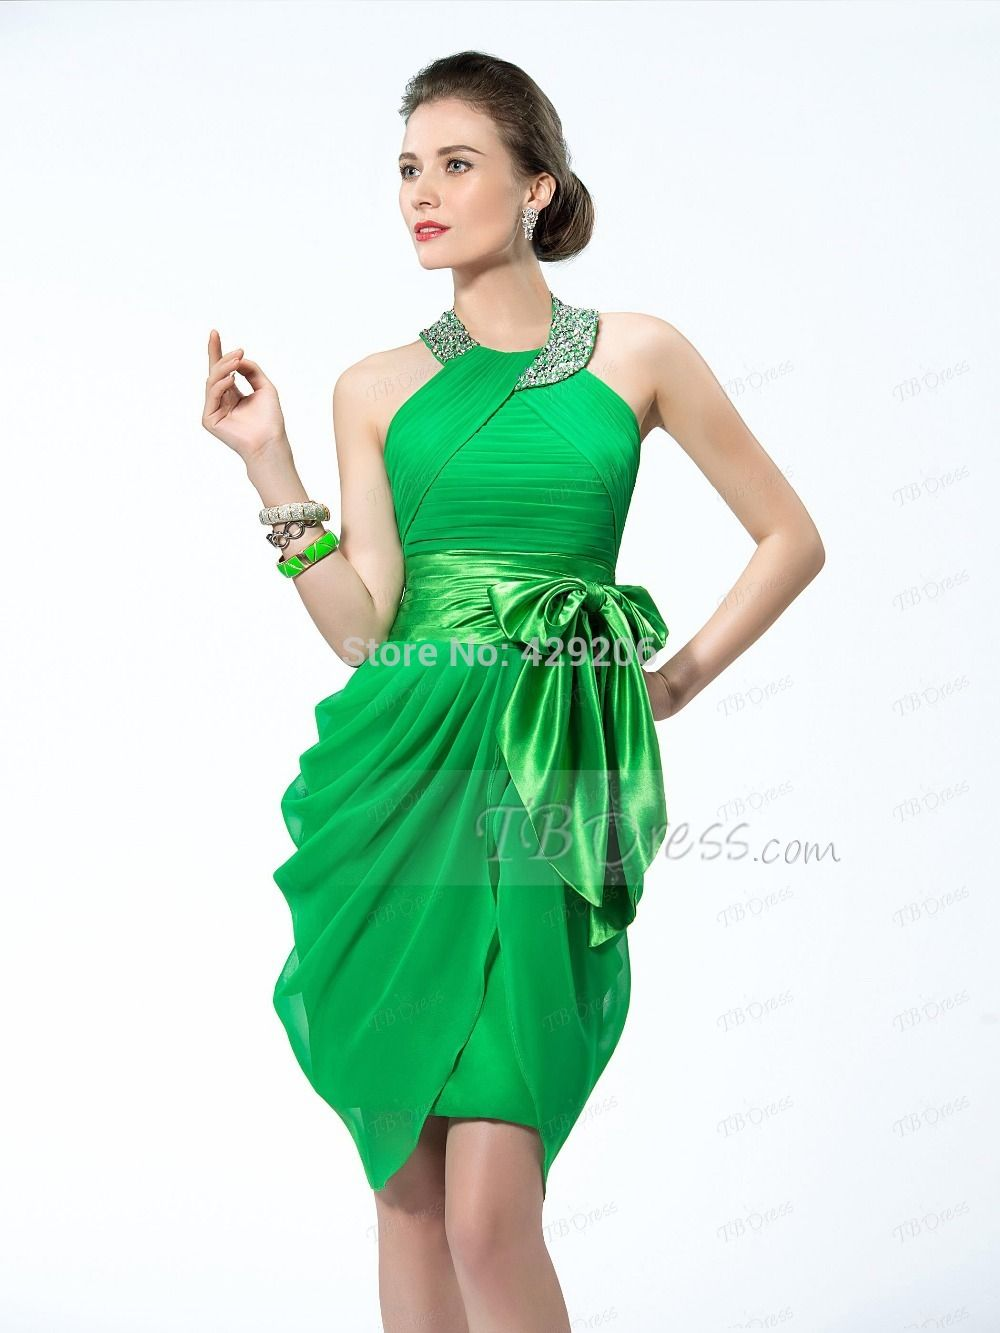 Fashion new beaded crystal halter neckline sequined studded belt cheap cocktail dresses pregnant women buy quality cocktail dress for plus size women directly from china cocktail dress blue suppliers delightful green ombrellifo Image collections